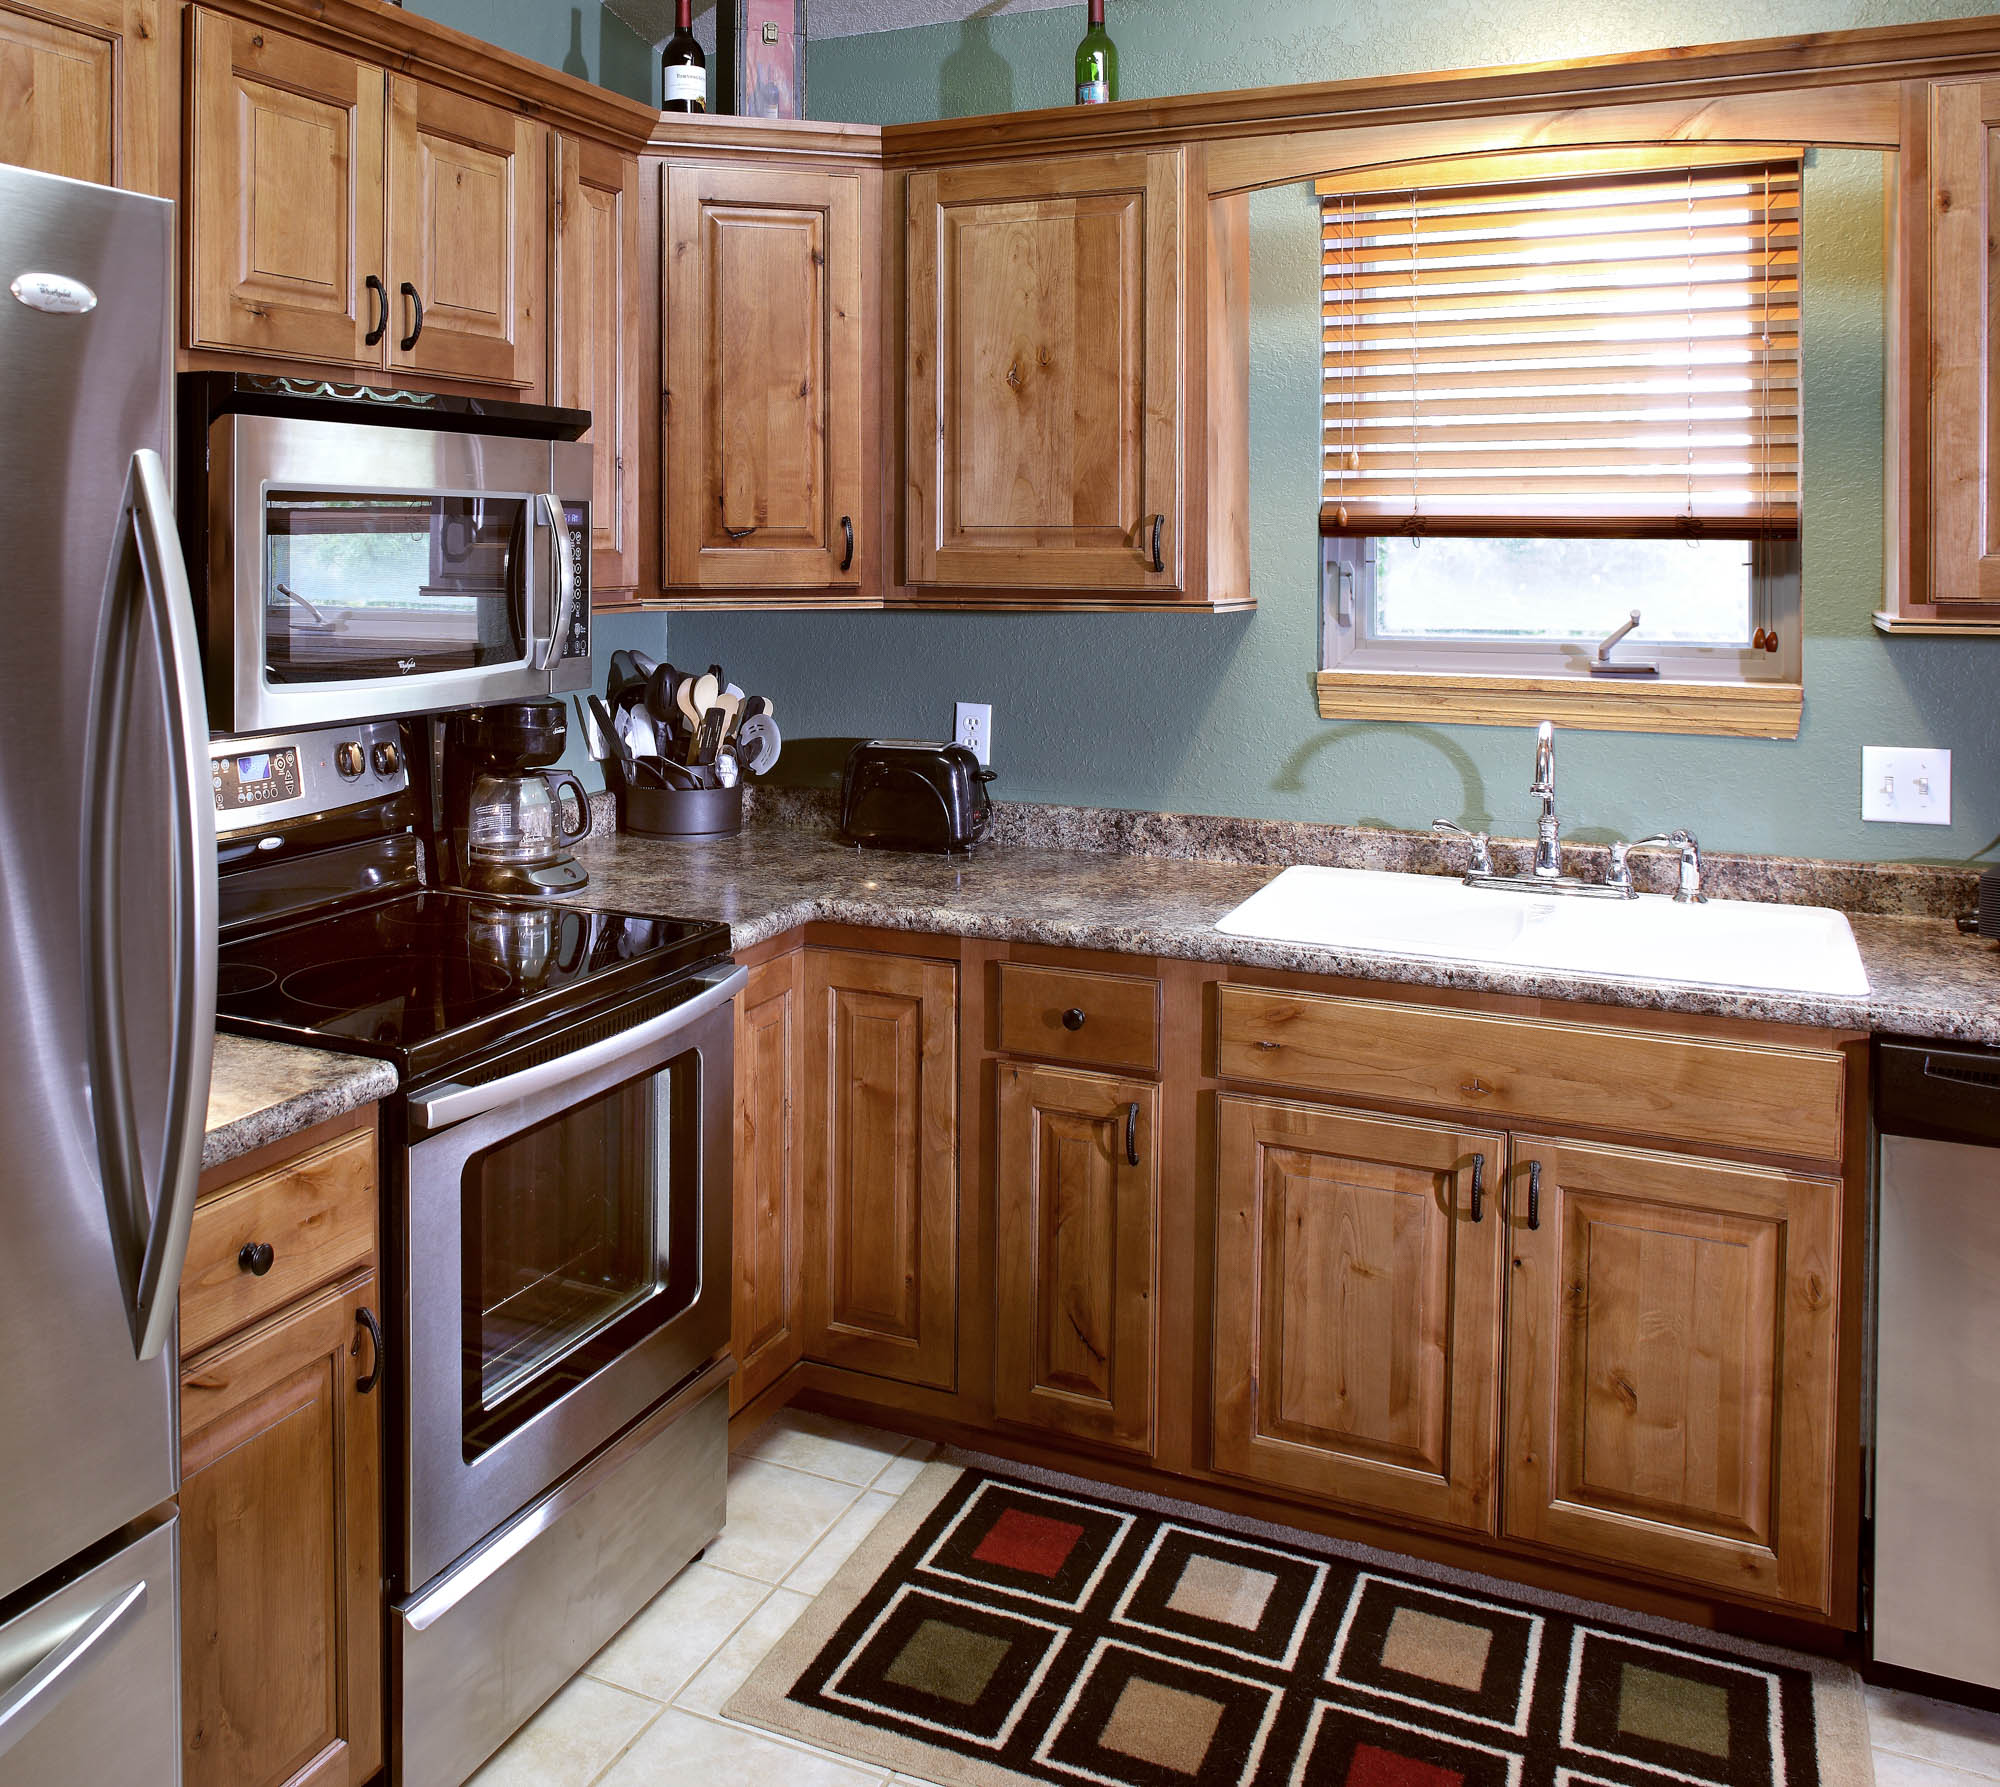 View The Warmth Of This Refaced Kitchen